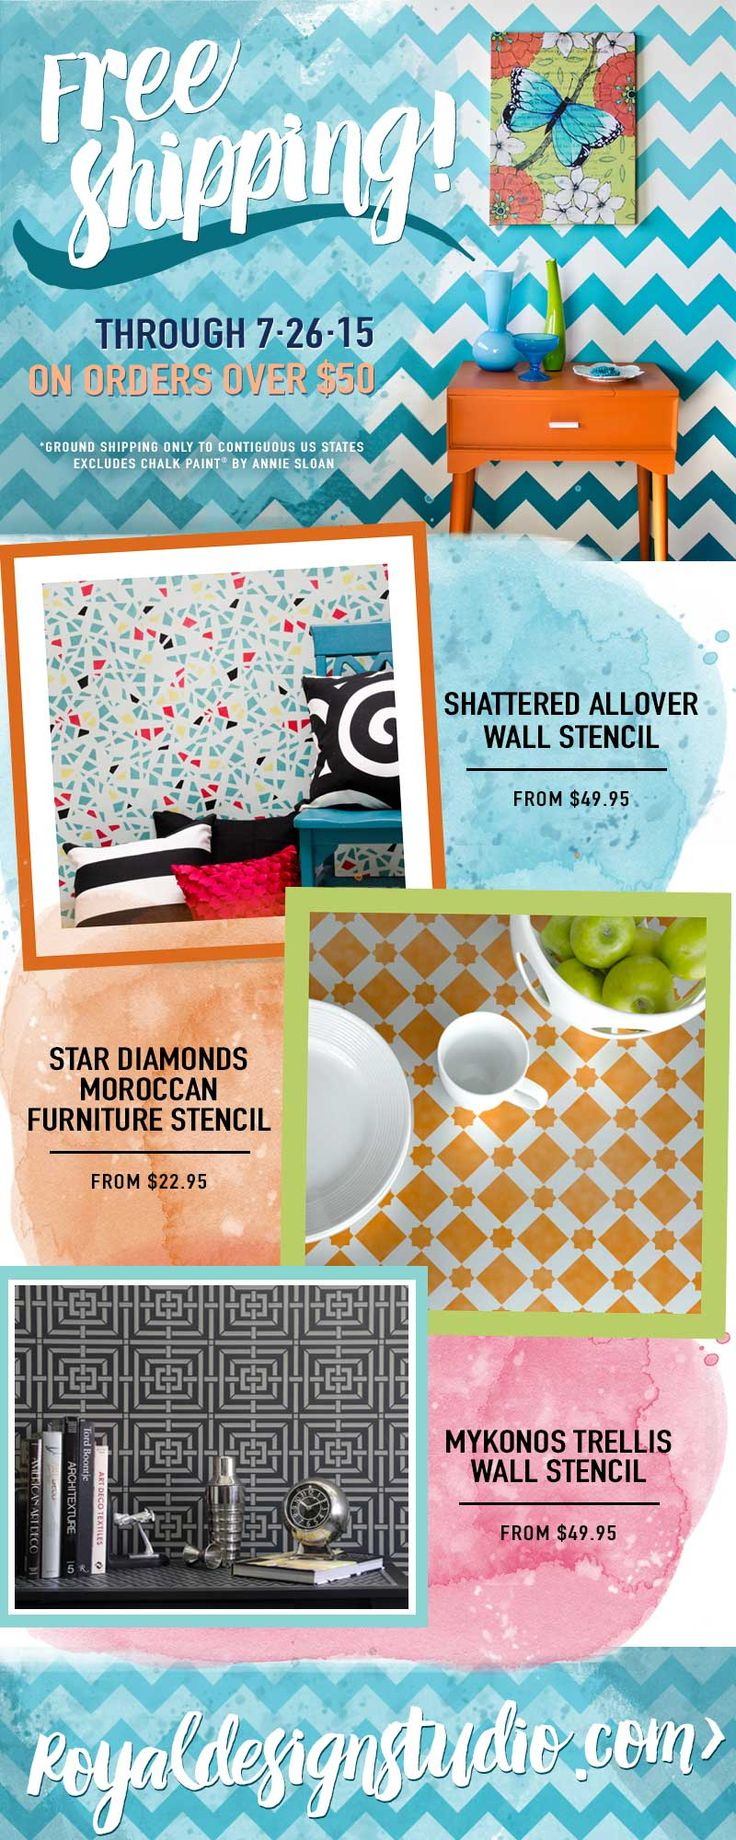 135 best sale stencilsproducts images on pinterest wall stencil designs and pretty pattern for a colorful room makeover thats cheaper than wallpaper wall stencils and furniture stencils for painting diy home amipublicfo Images